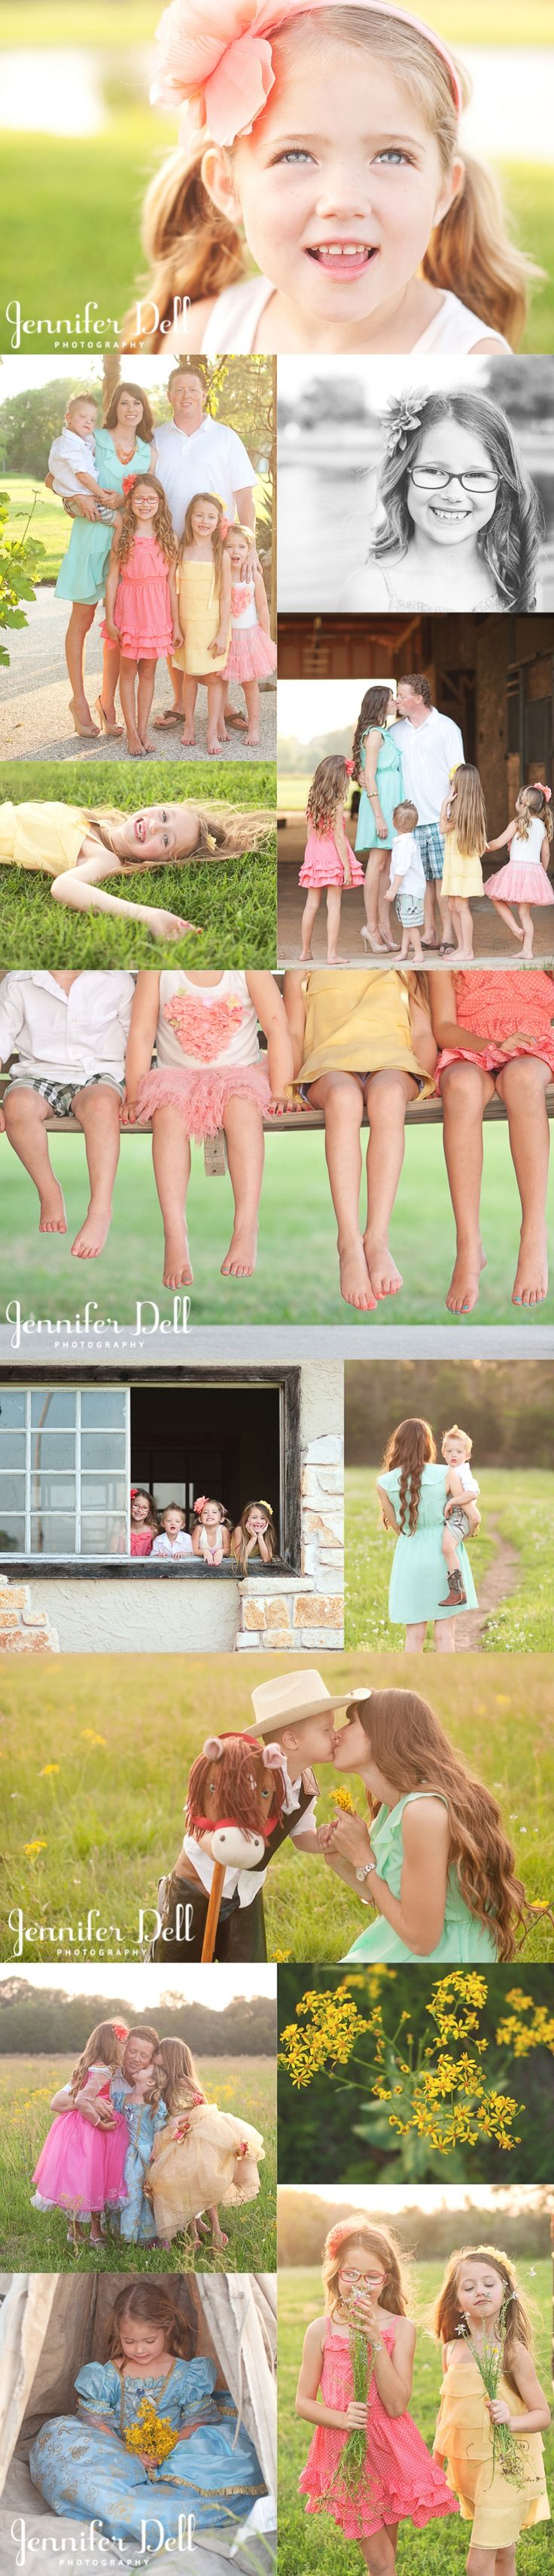 family photography © Jennifer Dell photography - Love the outfit color choices!  Perfect example of how great outfits completely make a great portrait!